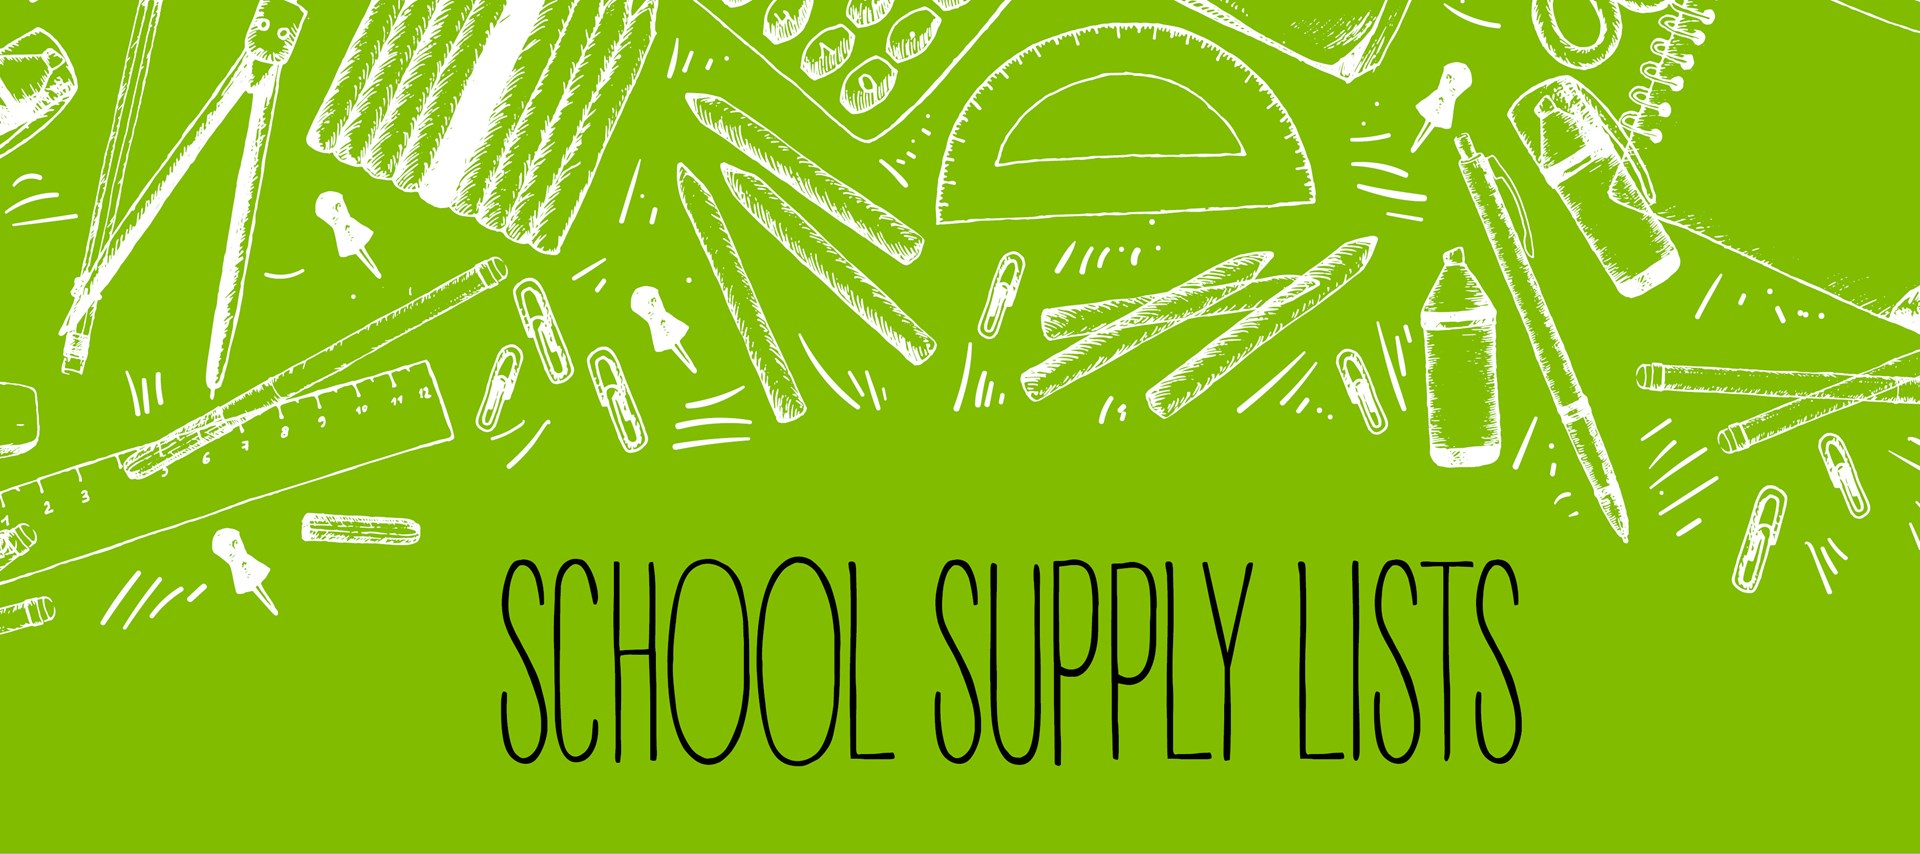 École Lakeview School Supply Lists